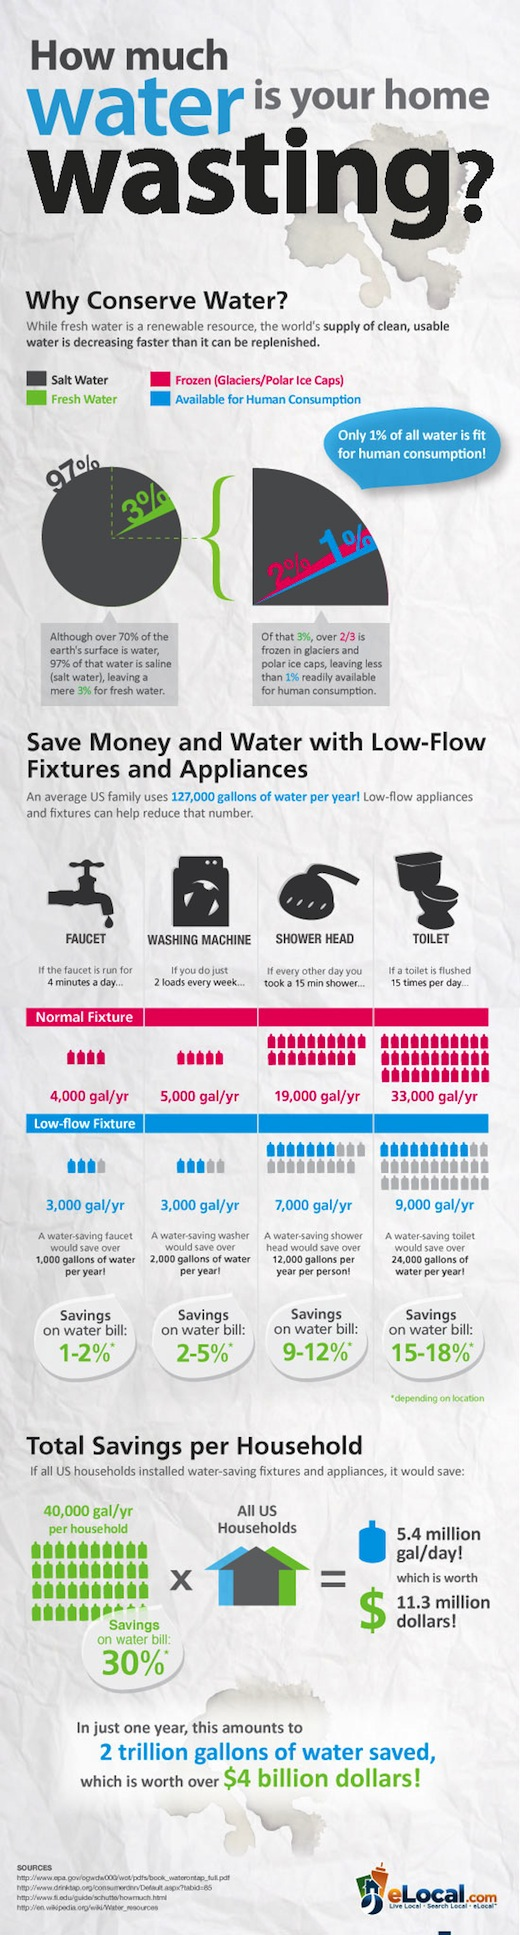 conserving water at home